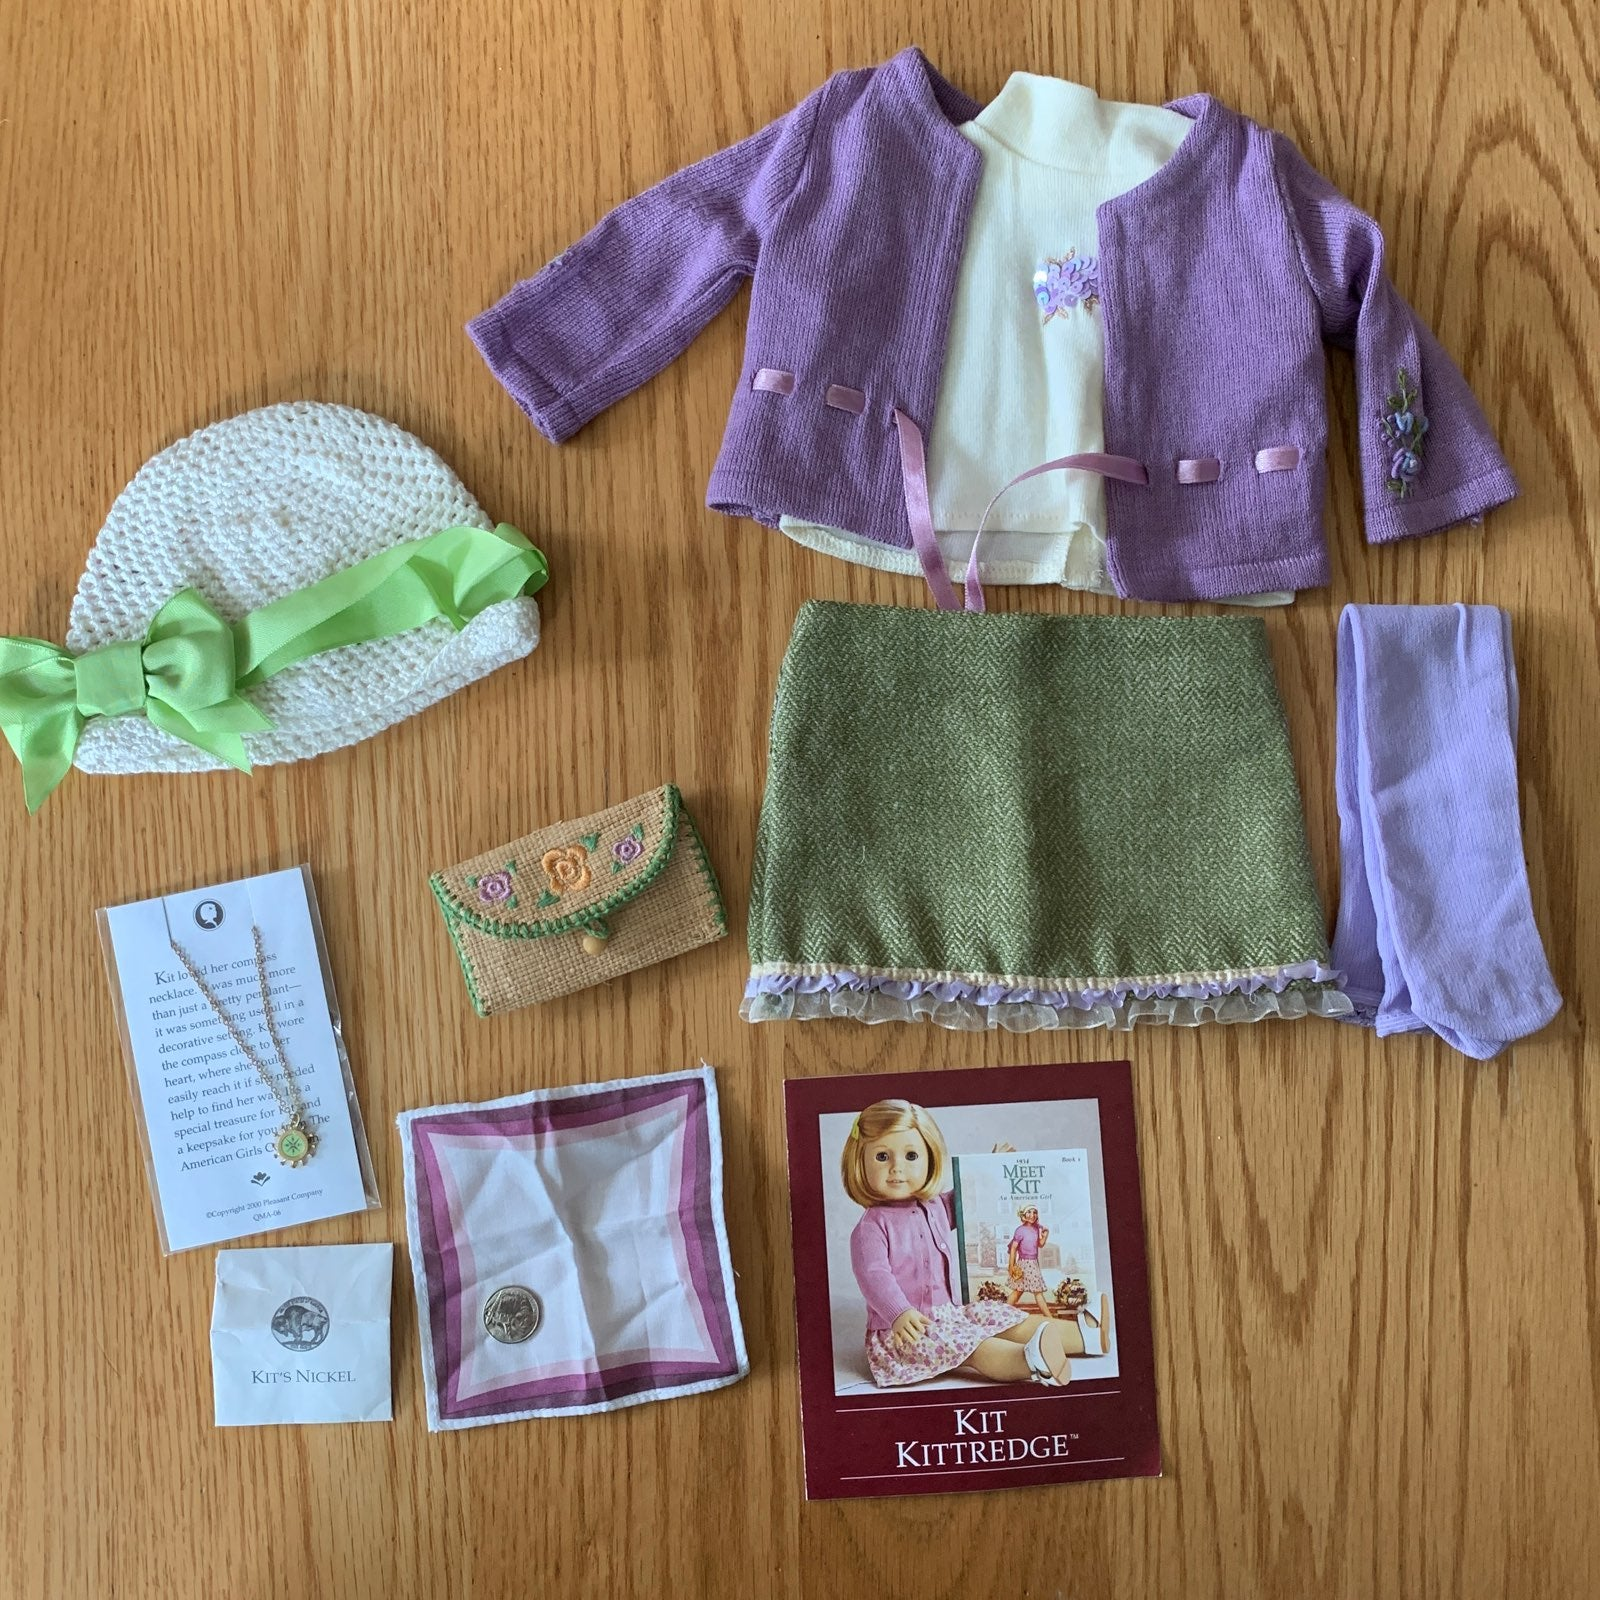 American Girl Kit outfit & accessories